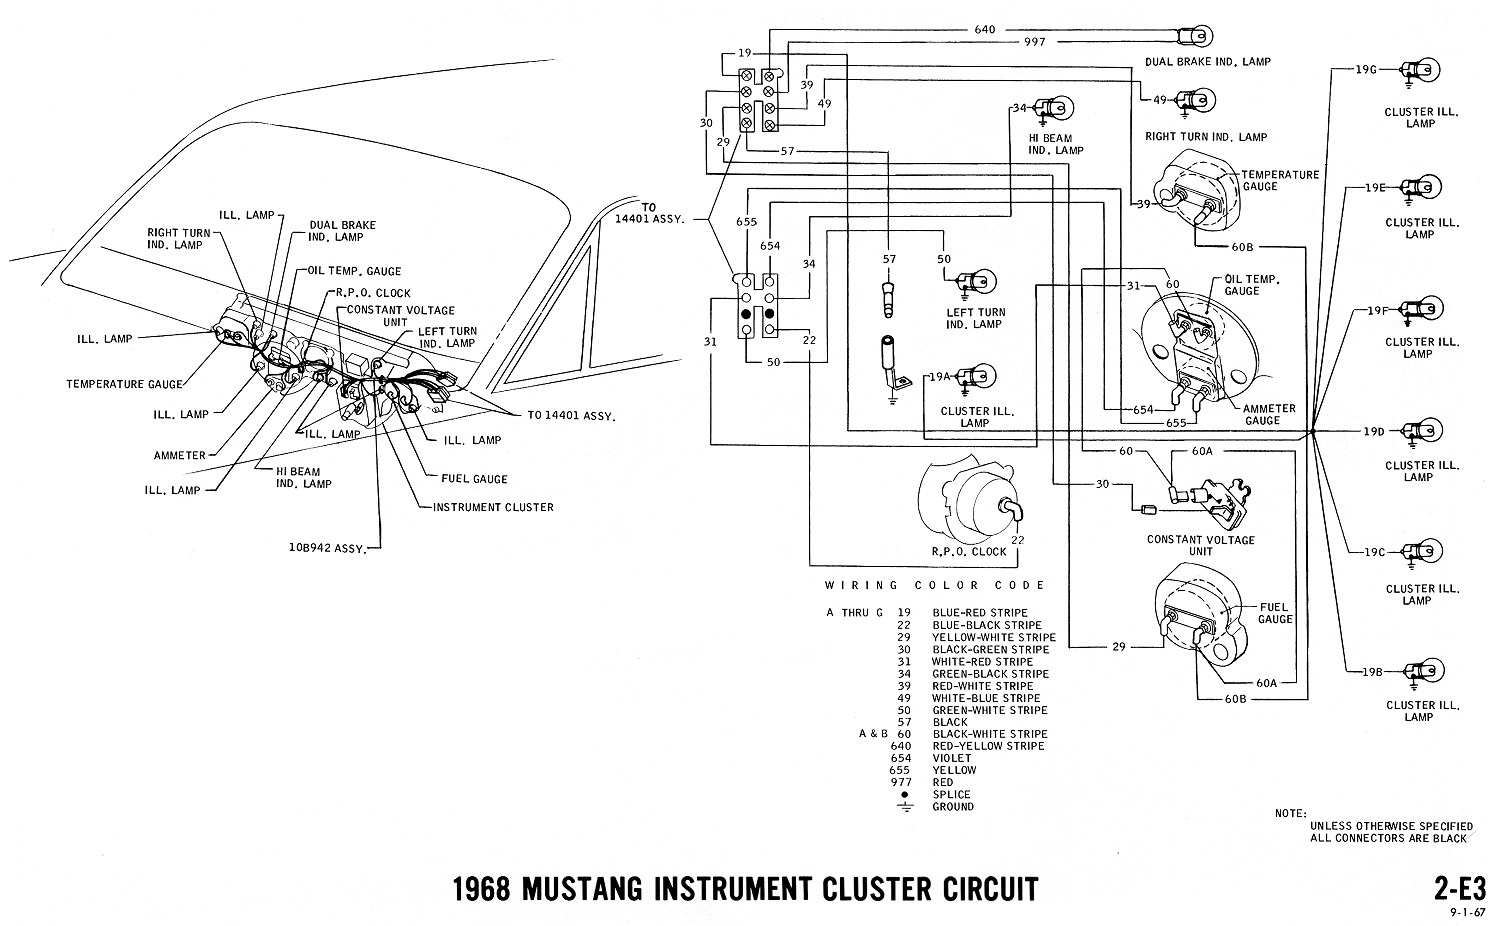 1968 mustang wiring diagram instruments 1970 mustang wiring diagram pdf 1967 mustang wiring diagram pdf 1967 mustang ignition wiring diagram at soozxer.org